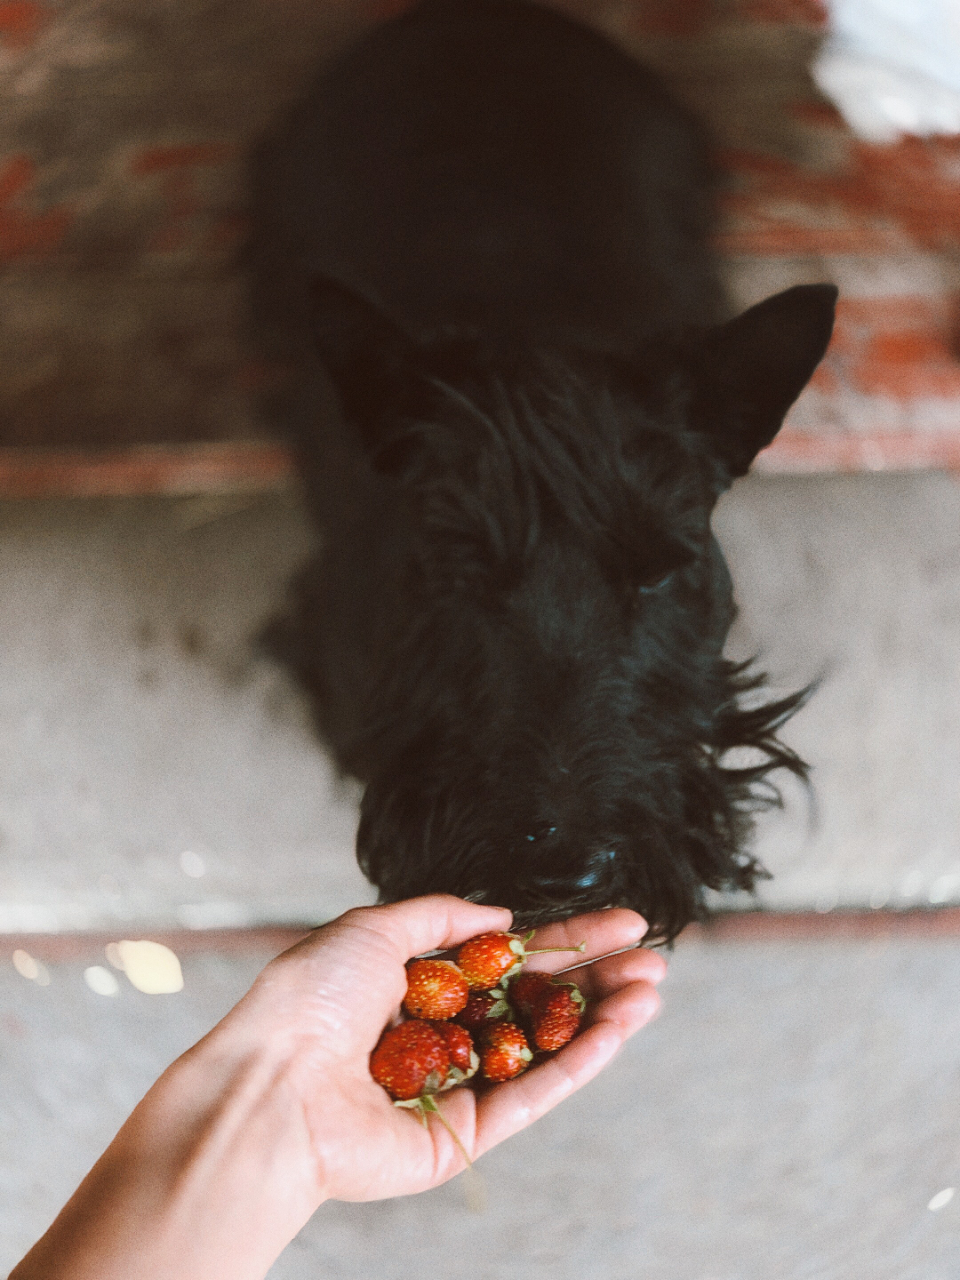 dog smelling fruit food strawberry highland black dog pet animal woman girl hand